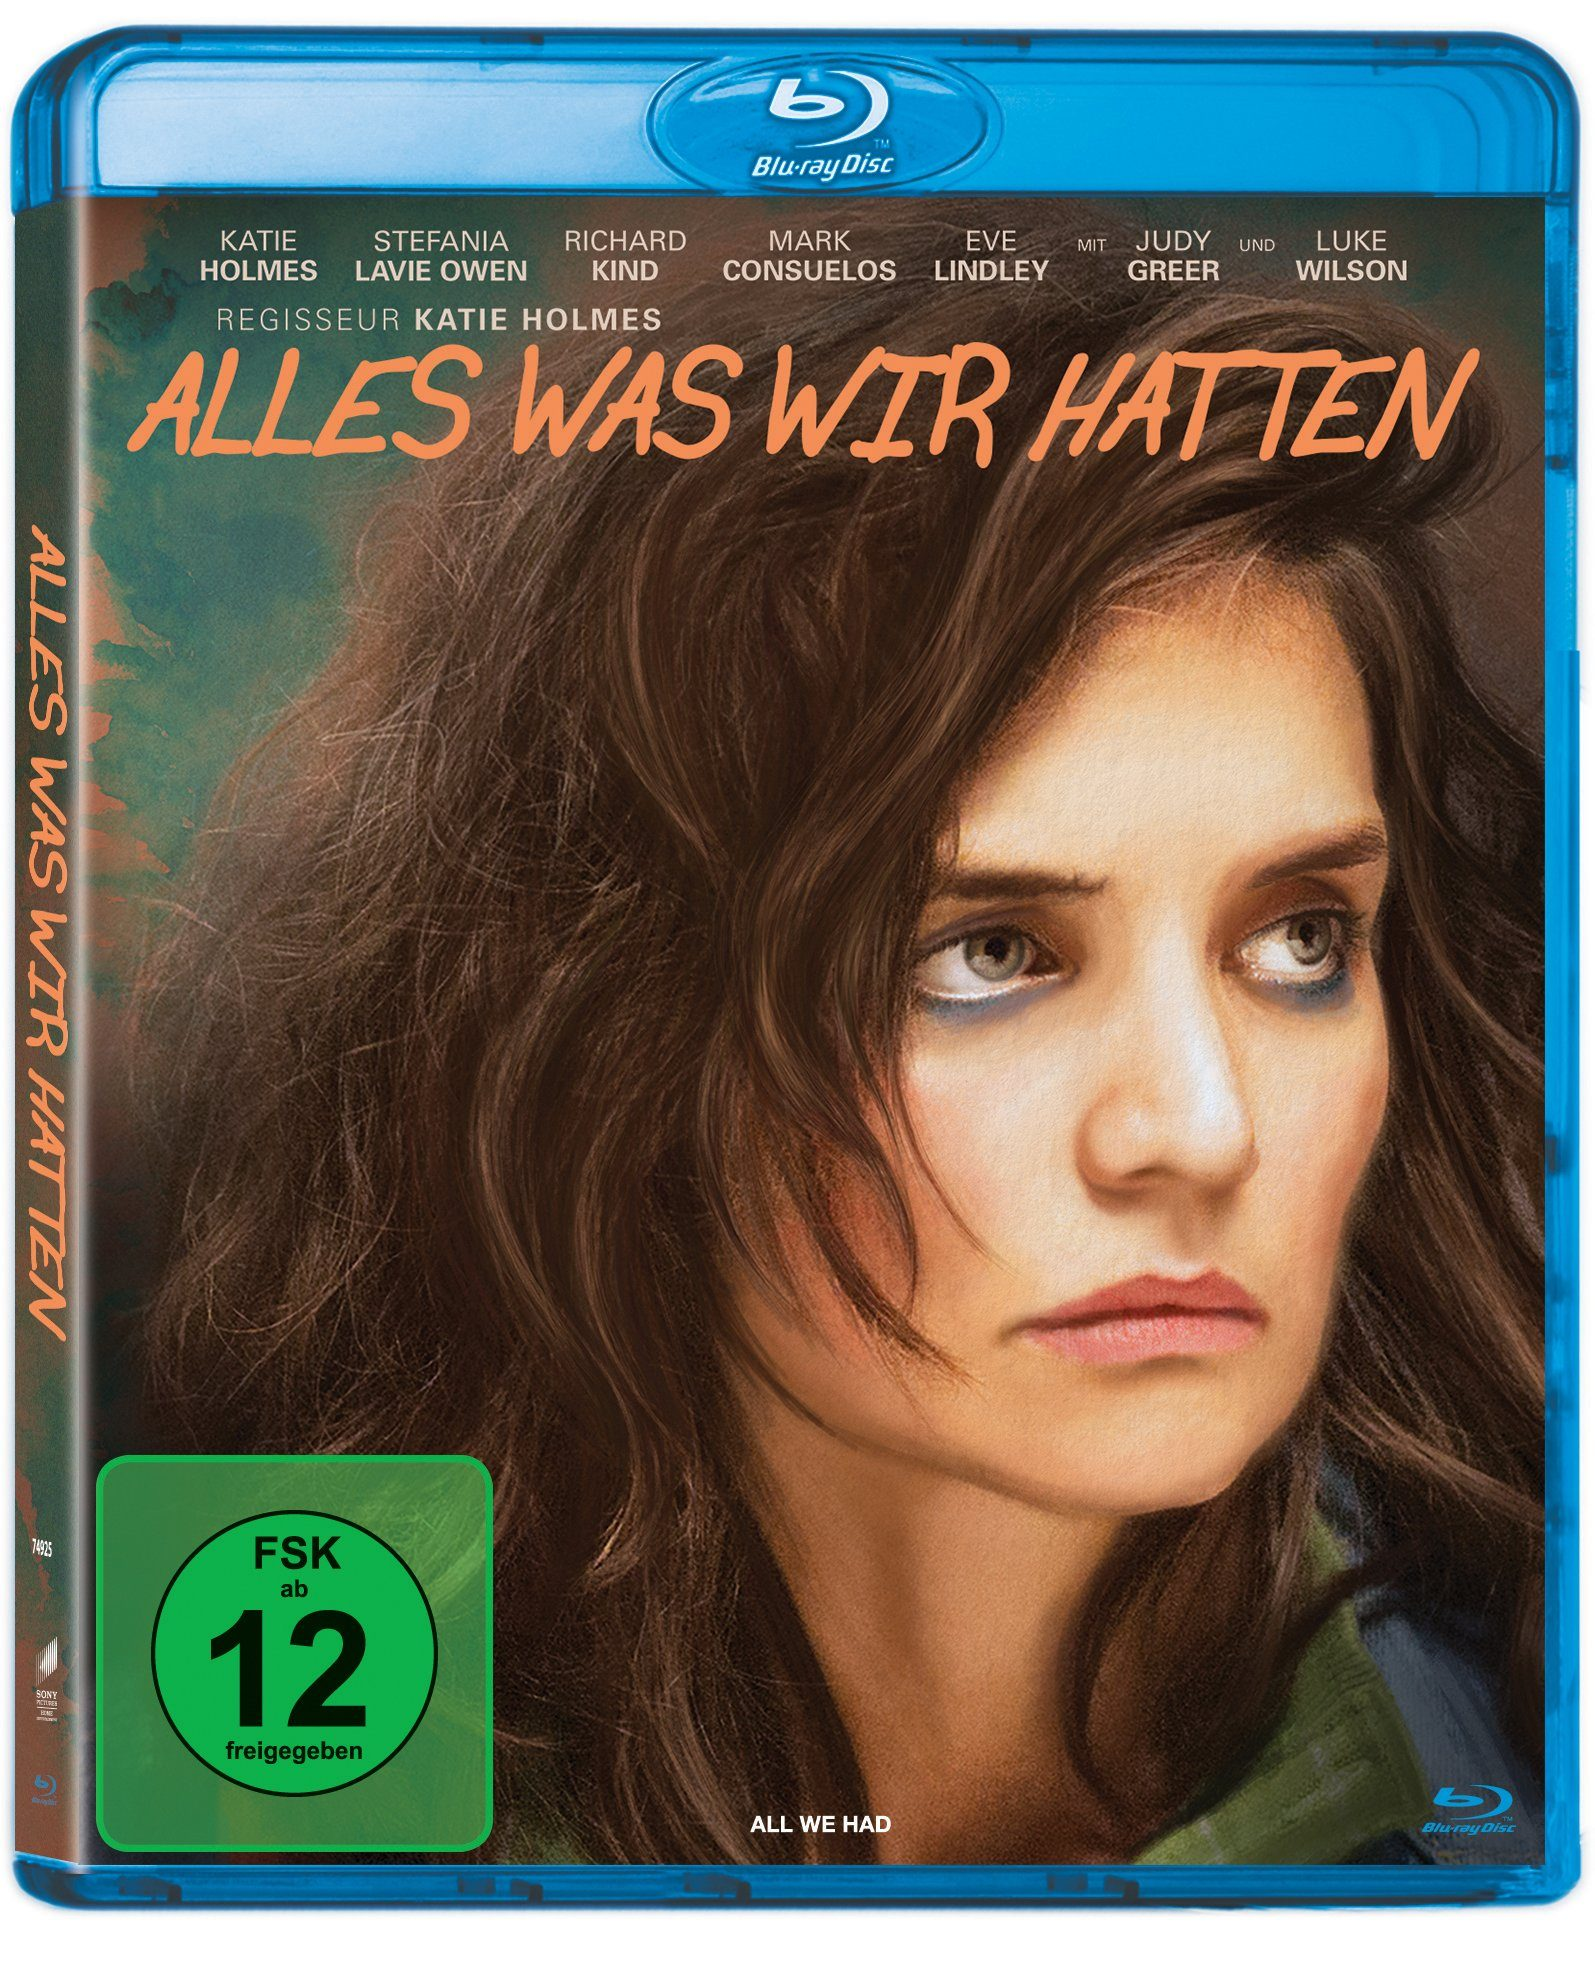 Sony Pictures Blu-ray »Alles was wir hatten«